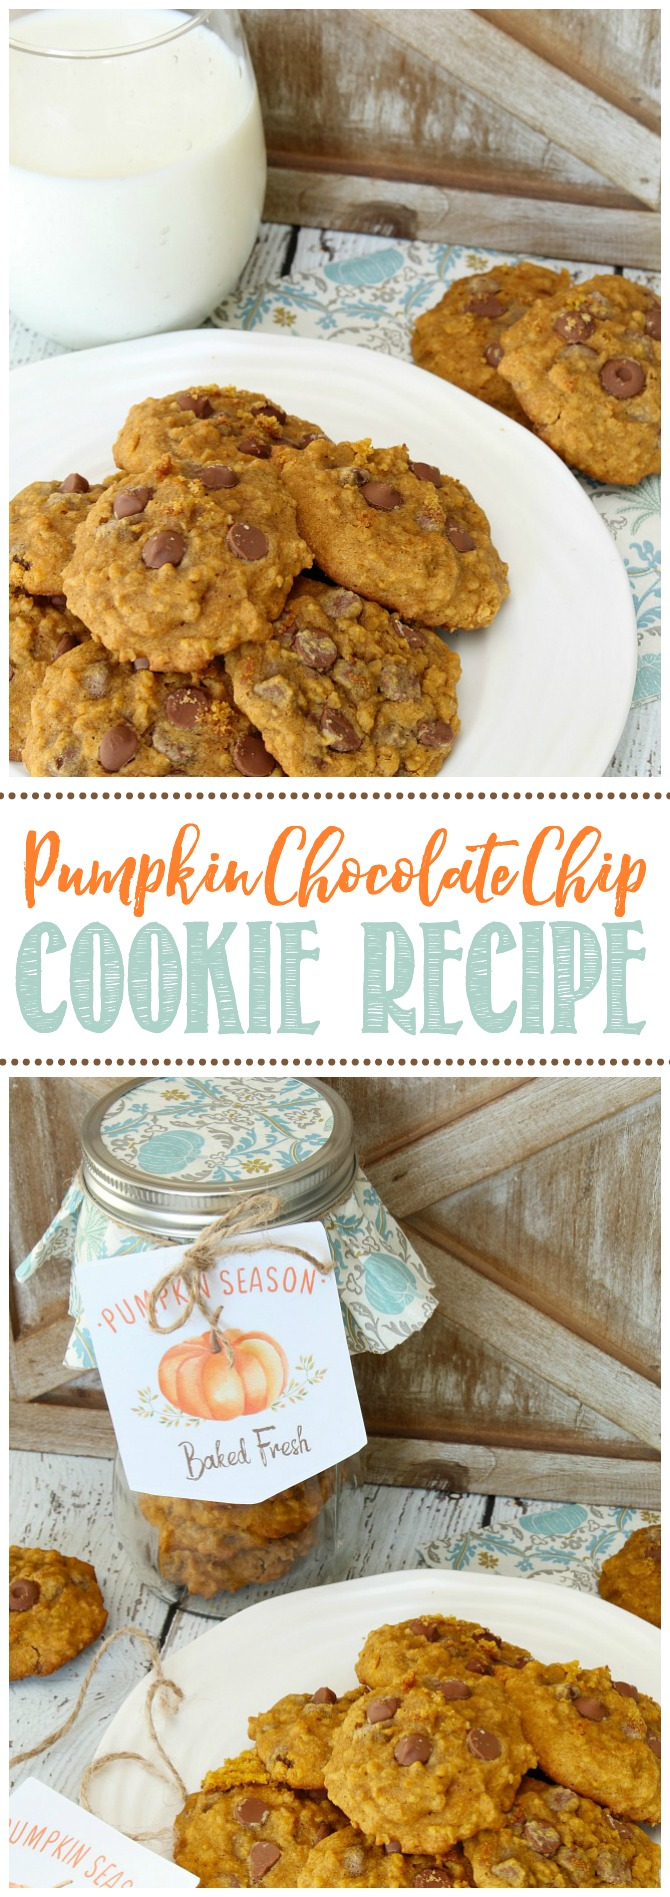 Pumpkin chocolate chip cookies on a plate with a glass of milk and a cute idea to package them up in a mason jar for a sweet fall gift!